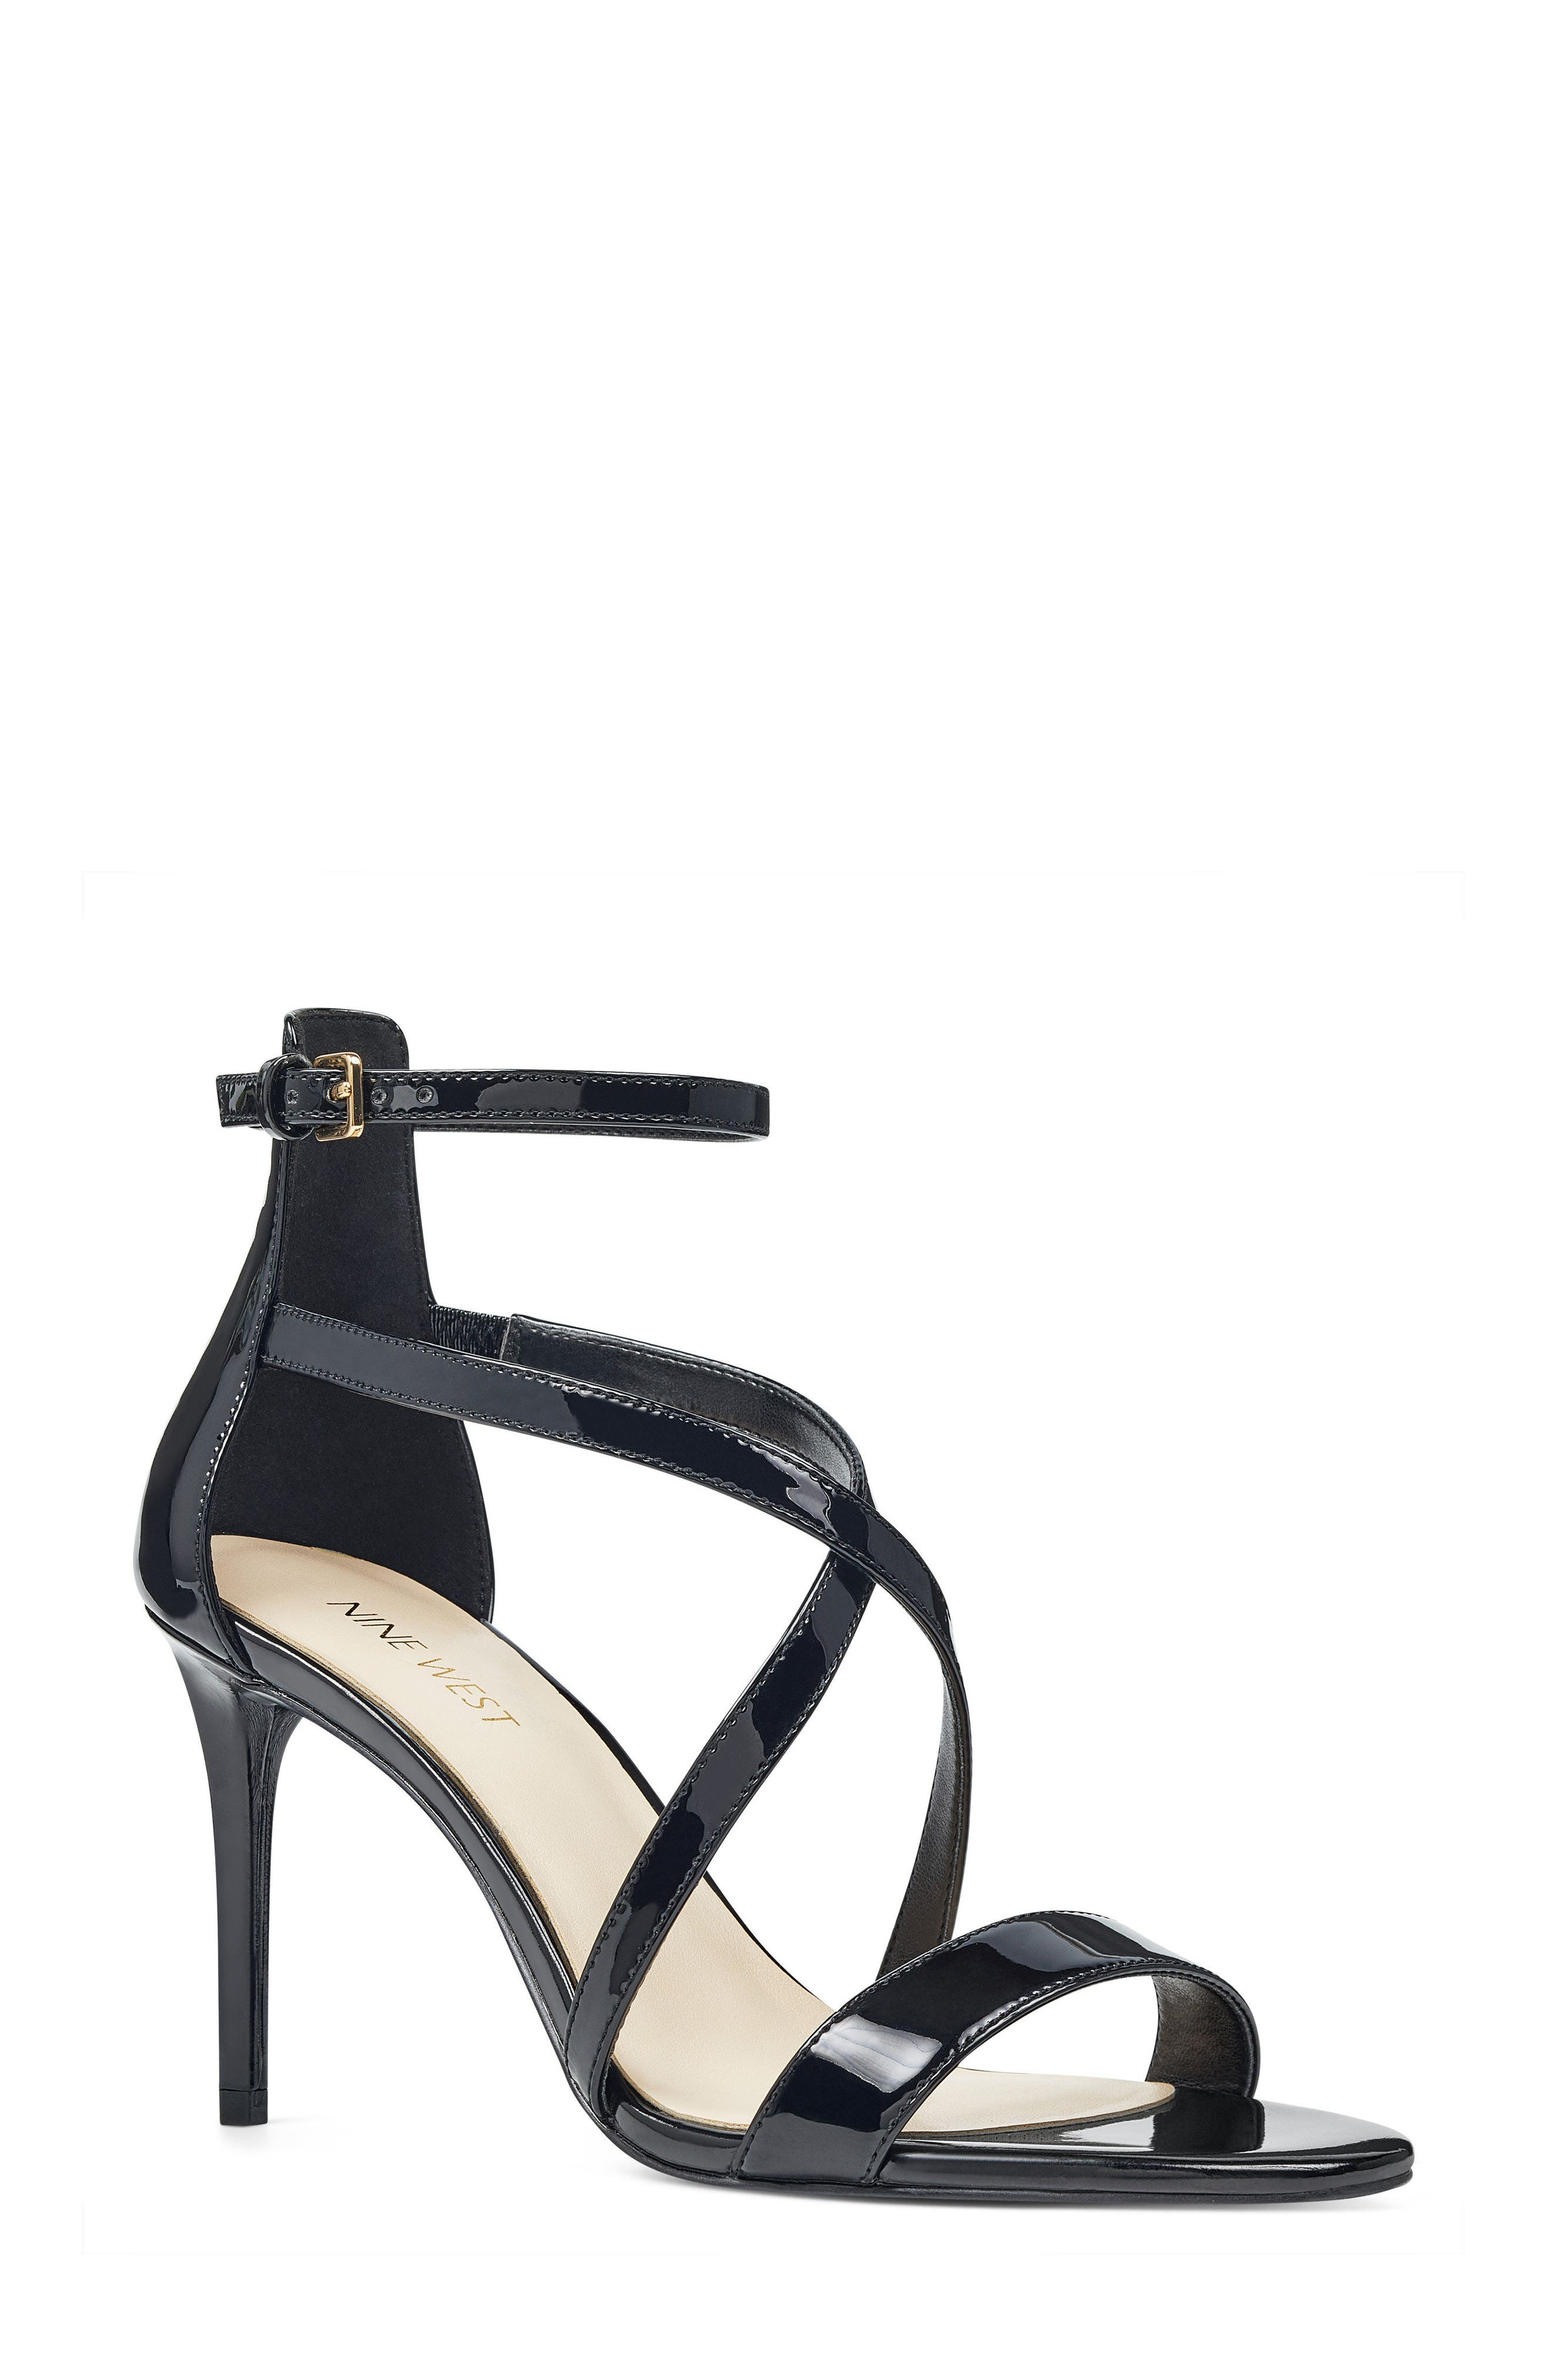 NINE WEST Retail Therapy Strappy Sandal, Main, color, 001